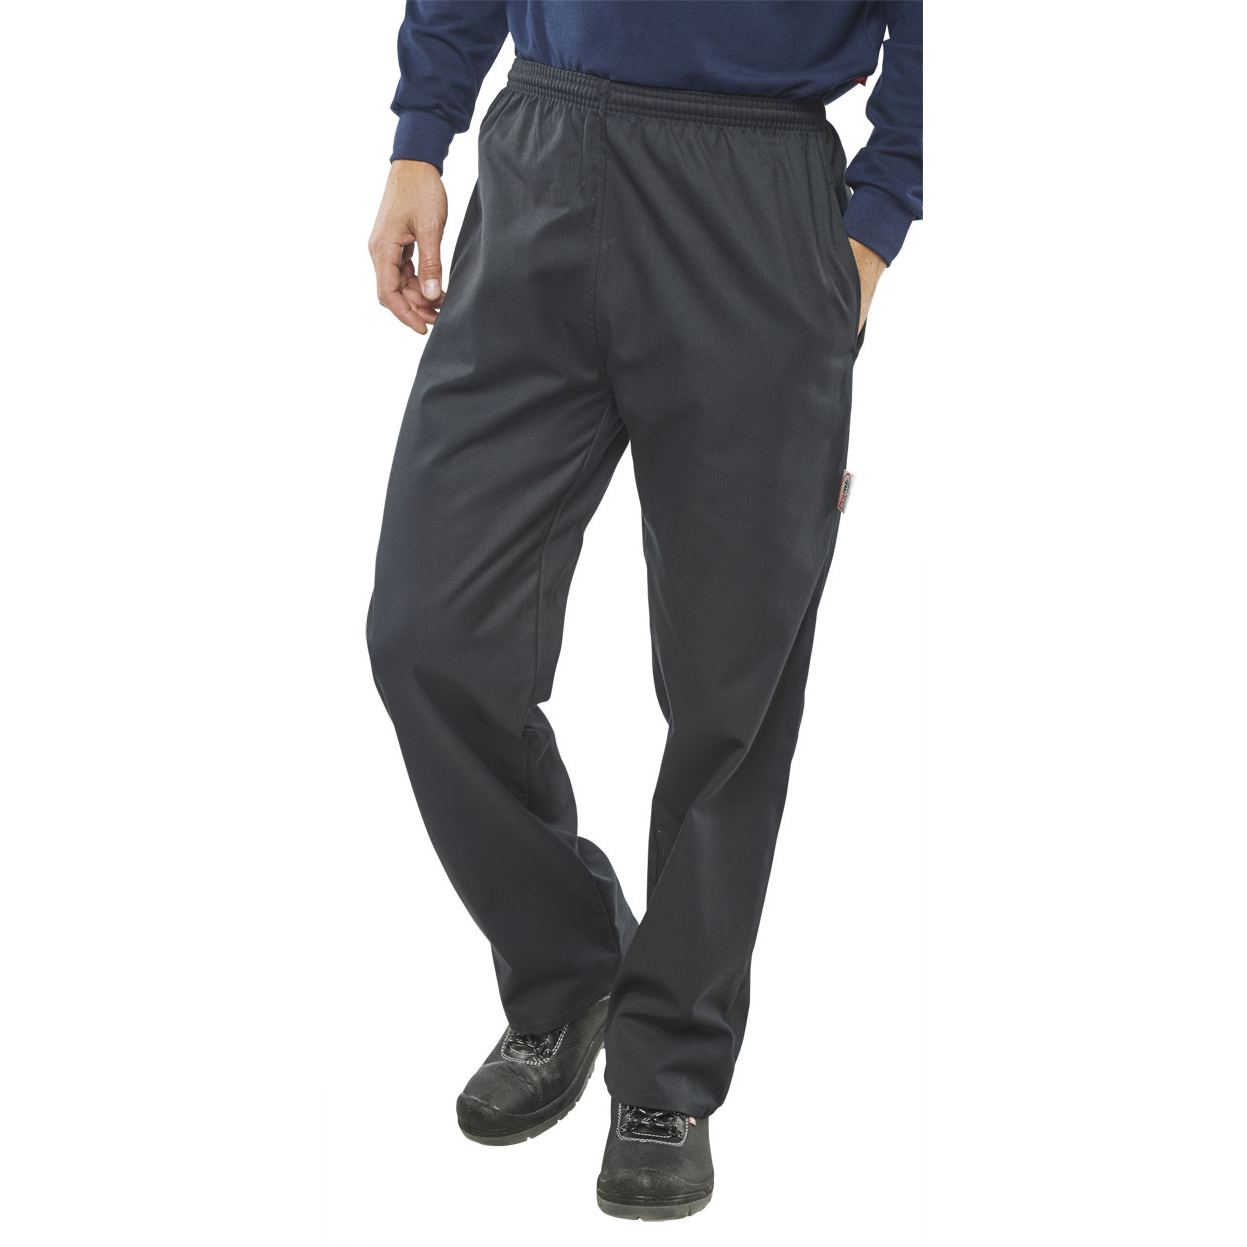 Fire Retardant / Flame Resistant Click Fire Retardant Protex Trousers XL Navy Blue Ref CFRPTNXL *Up to 3 Day Leadtime*